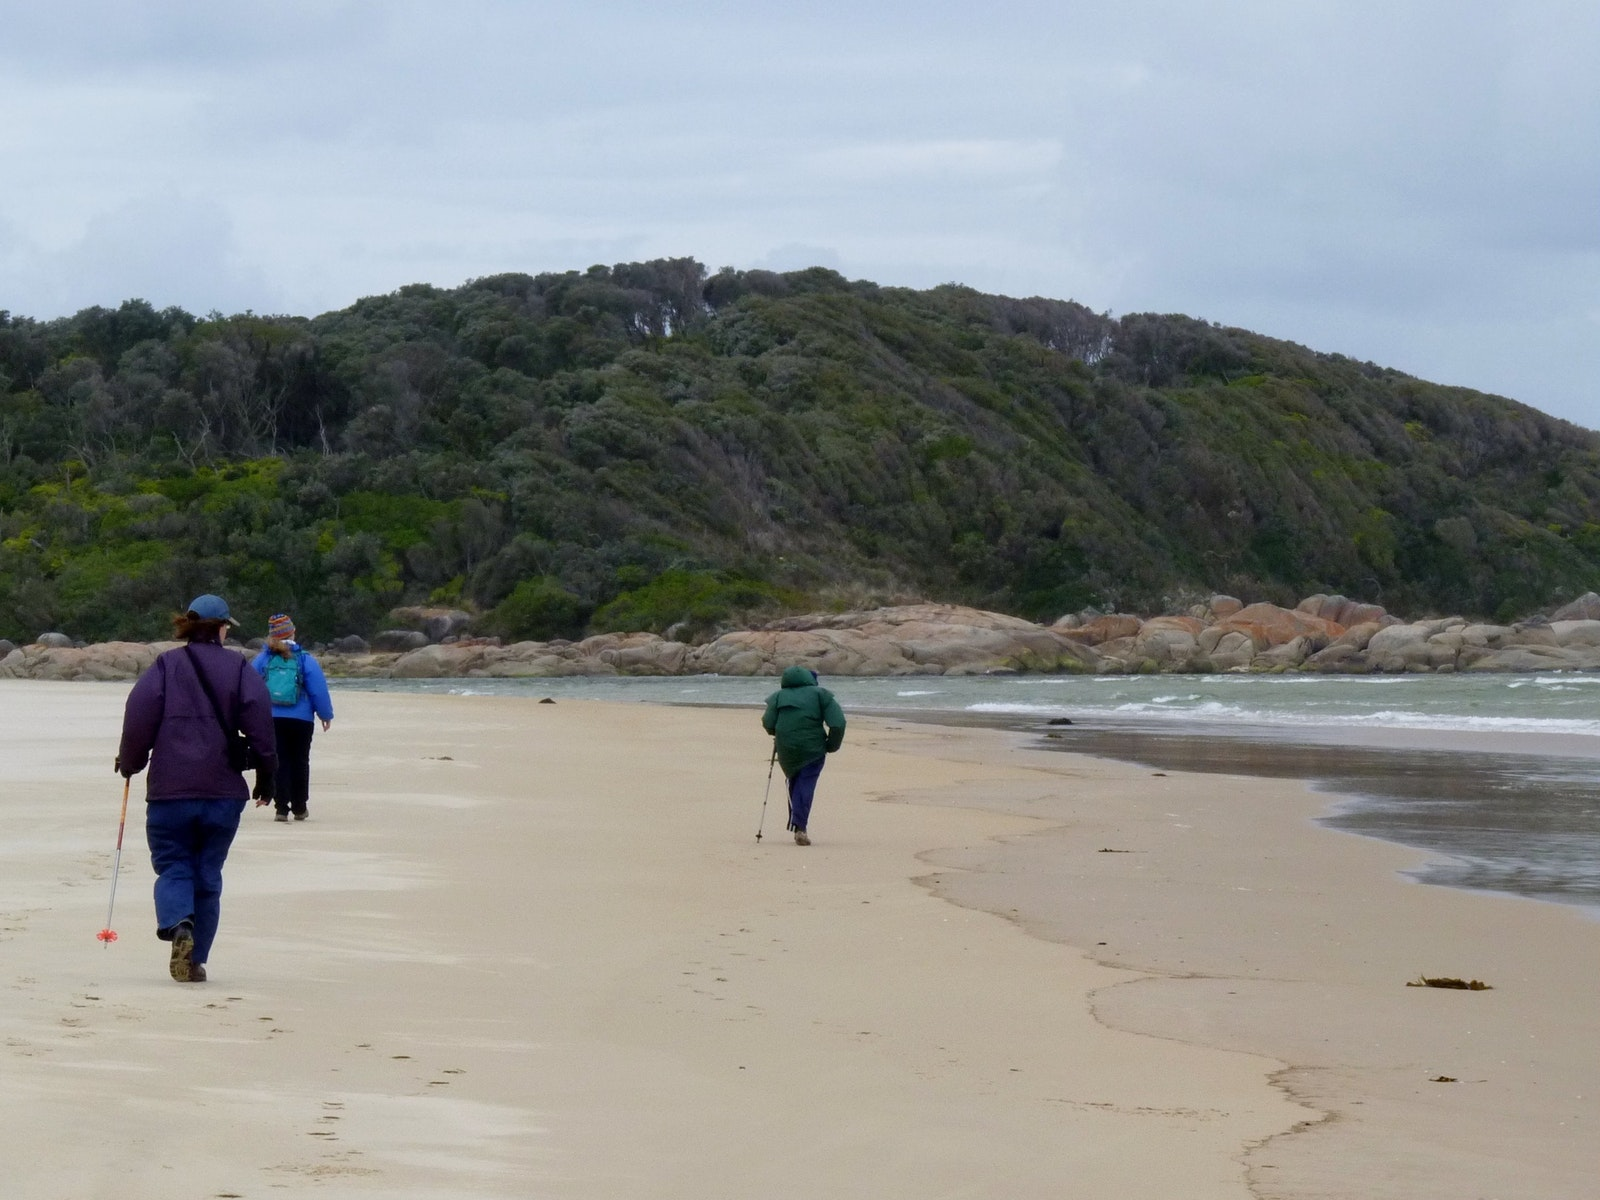 Walking along deserted Croajingolong beaches